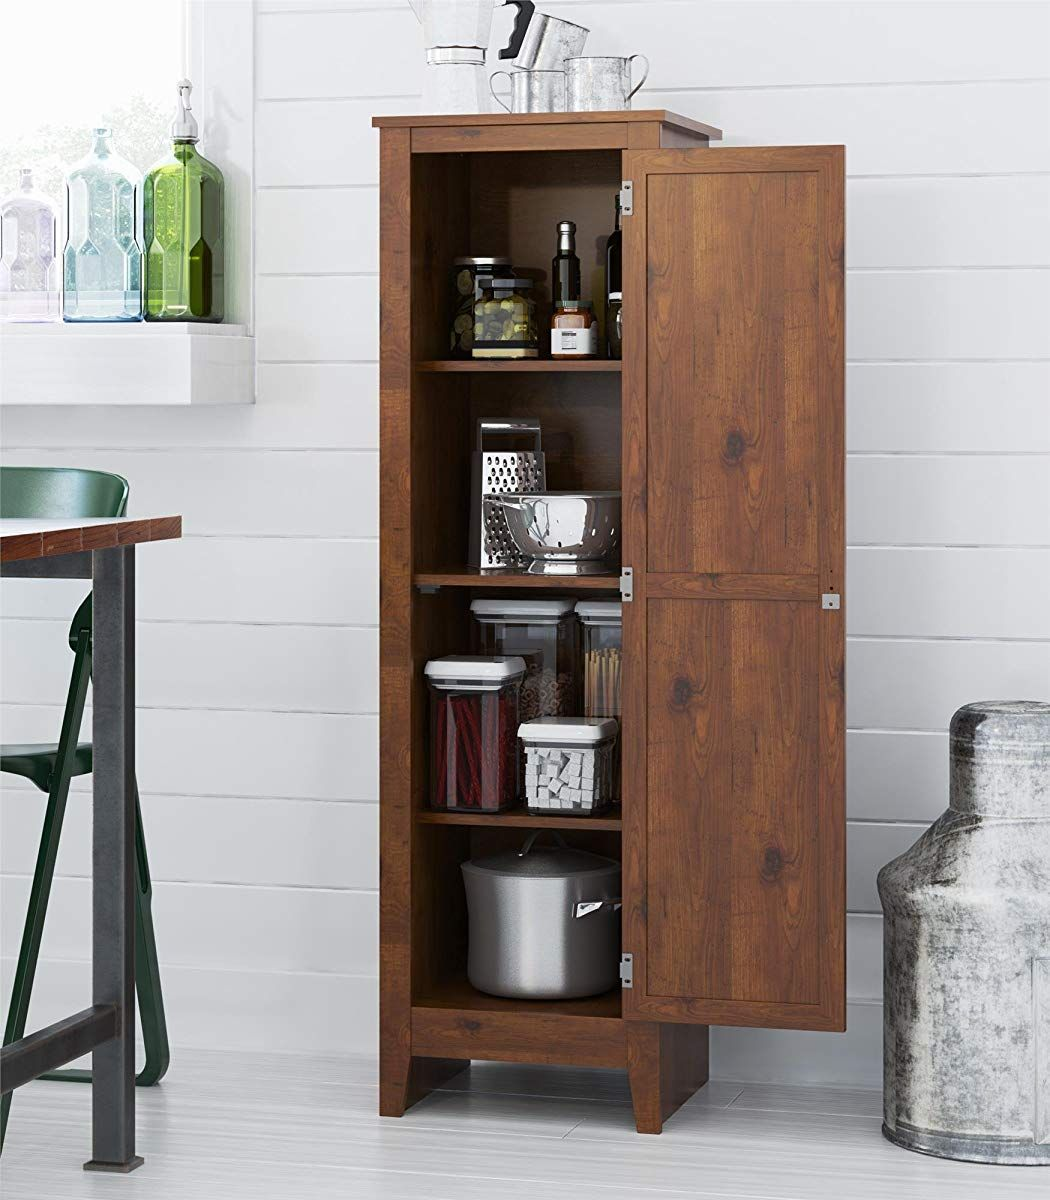 Narrow Cabinet With Doors Single Door Pantry Cabinet Kitchen Pantry Storage Cabinet Pantry Storage Cabinet